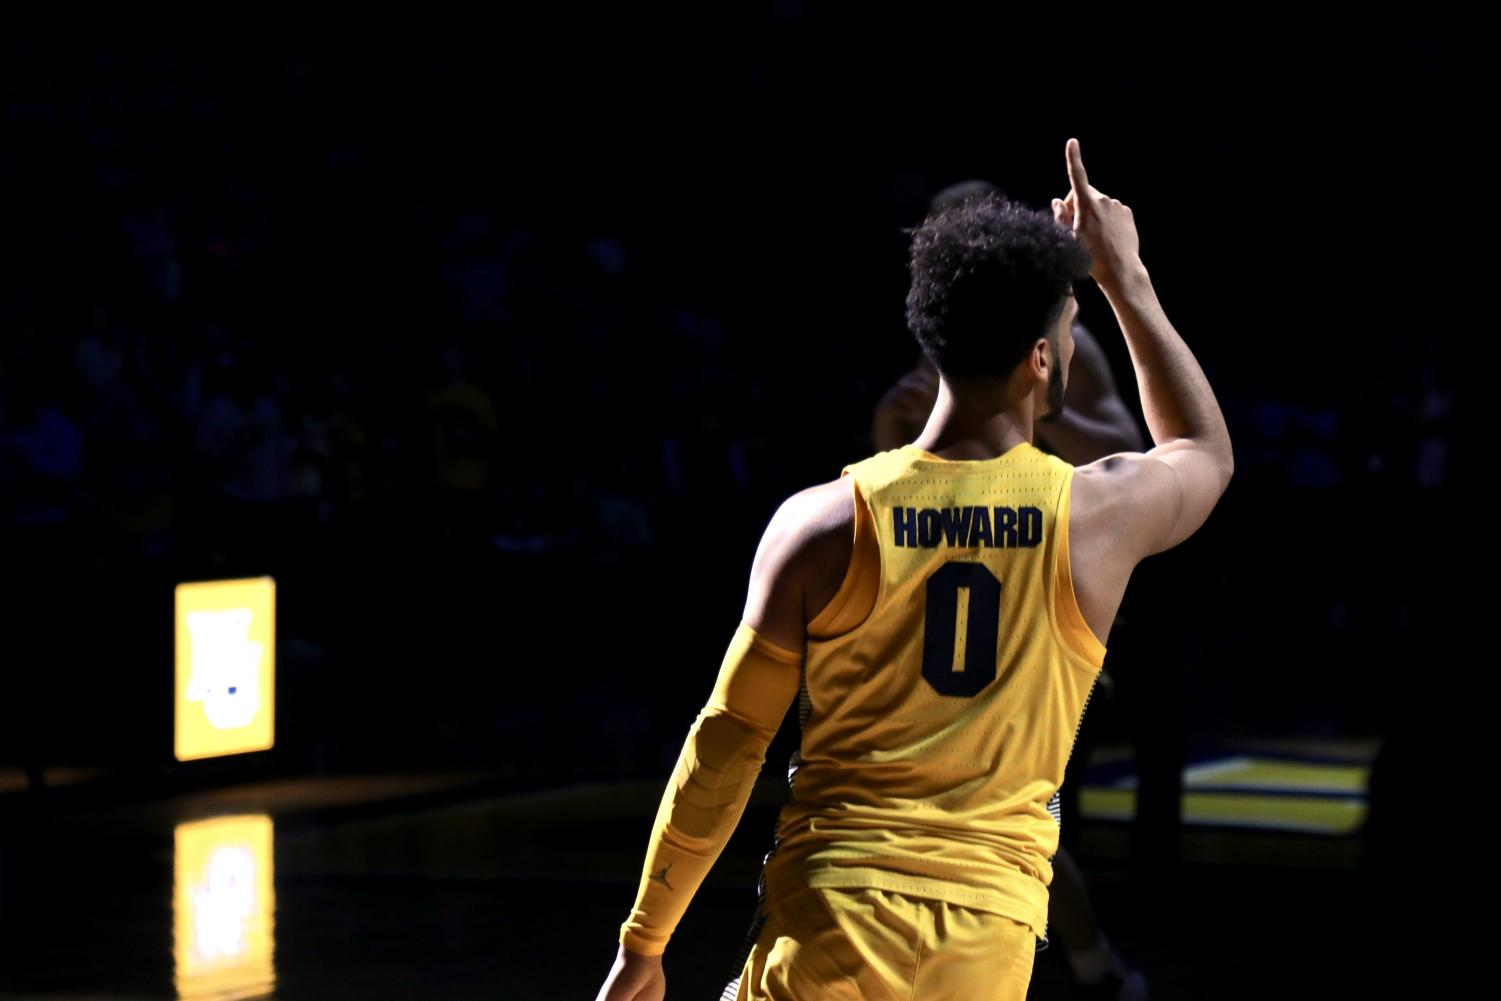 Sophomore Markus Howard enters the court during introductions.